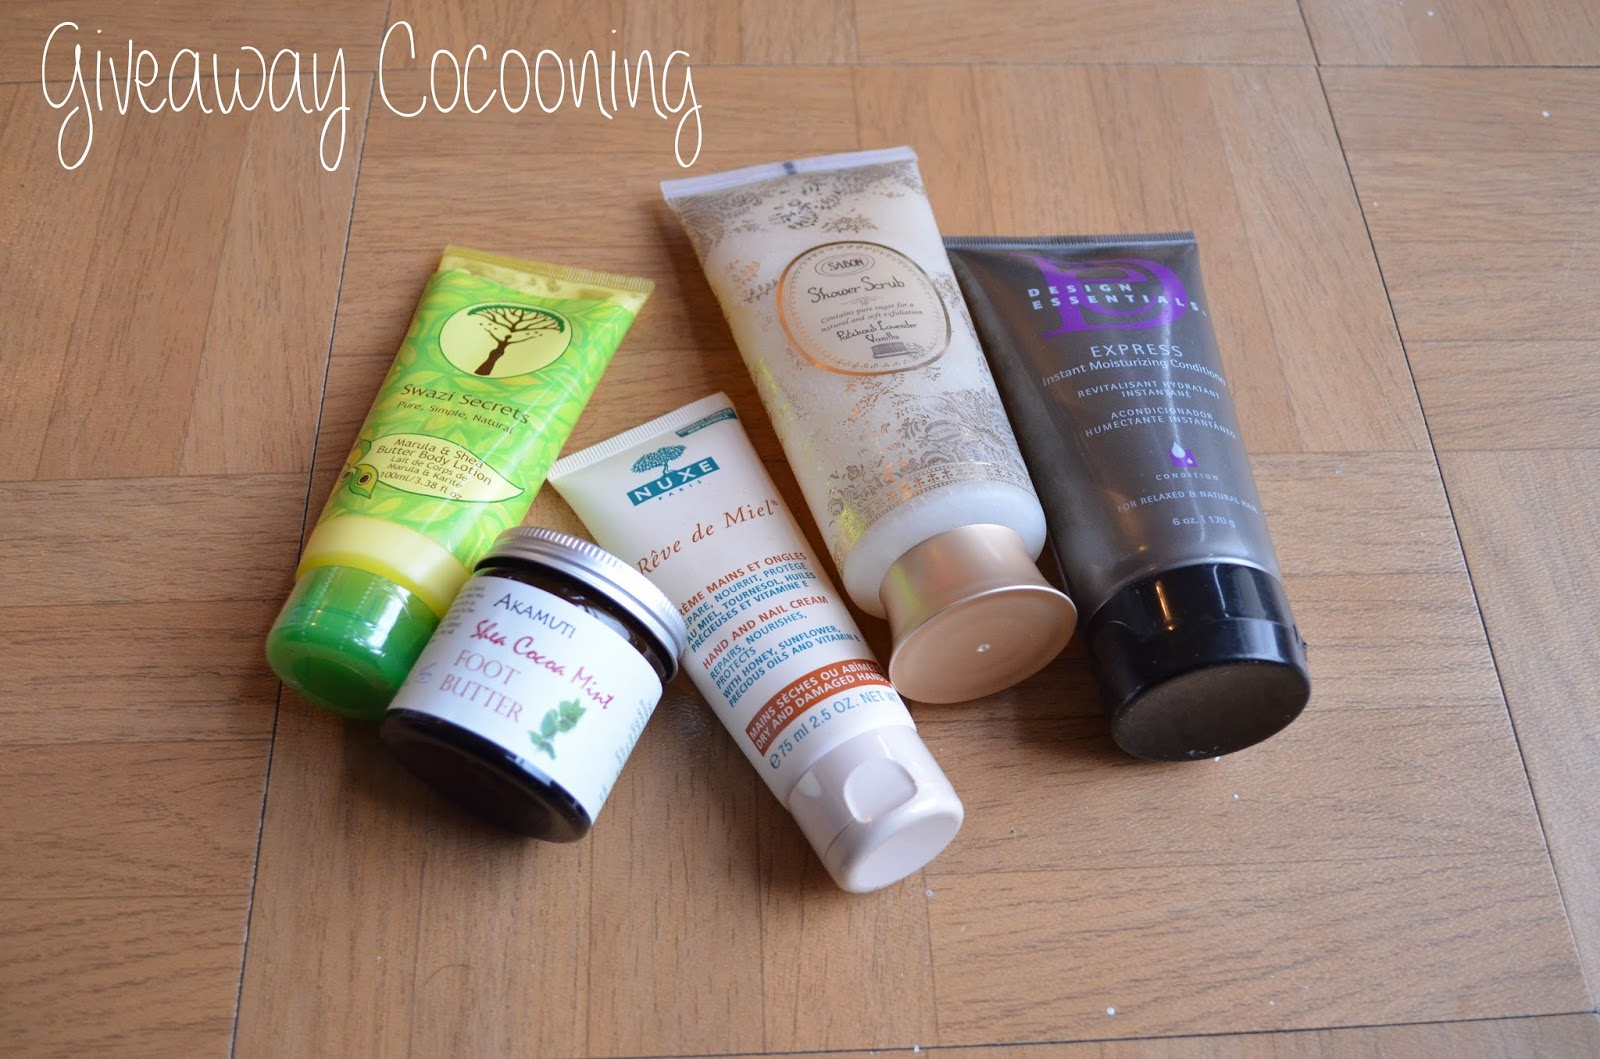 giveaway Cocooning Blog Afromangocie